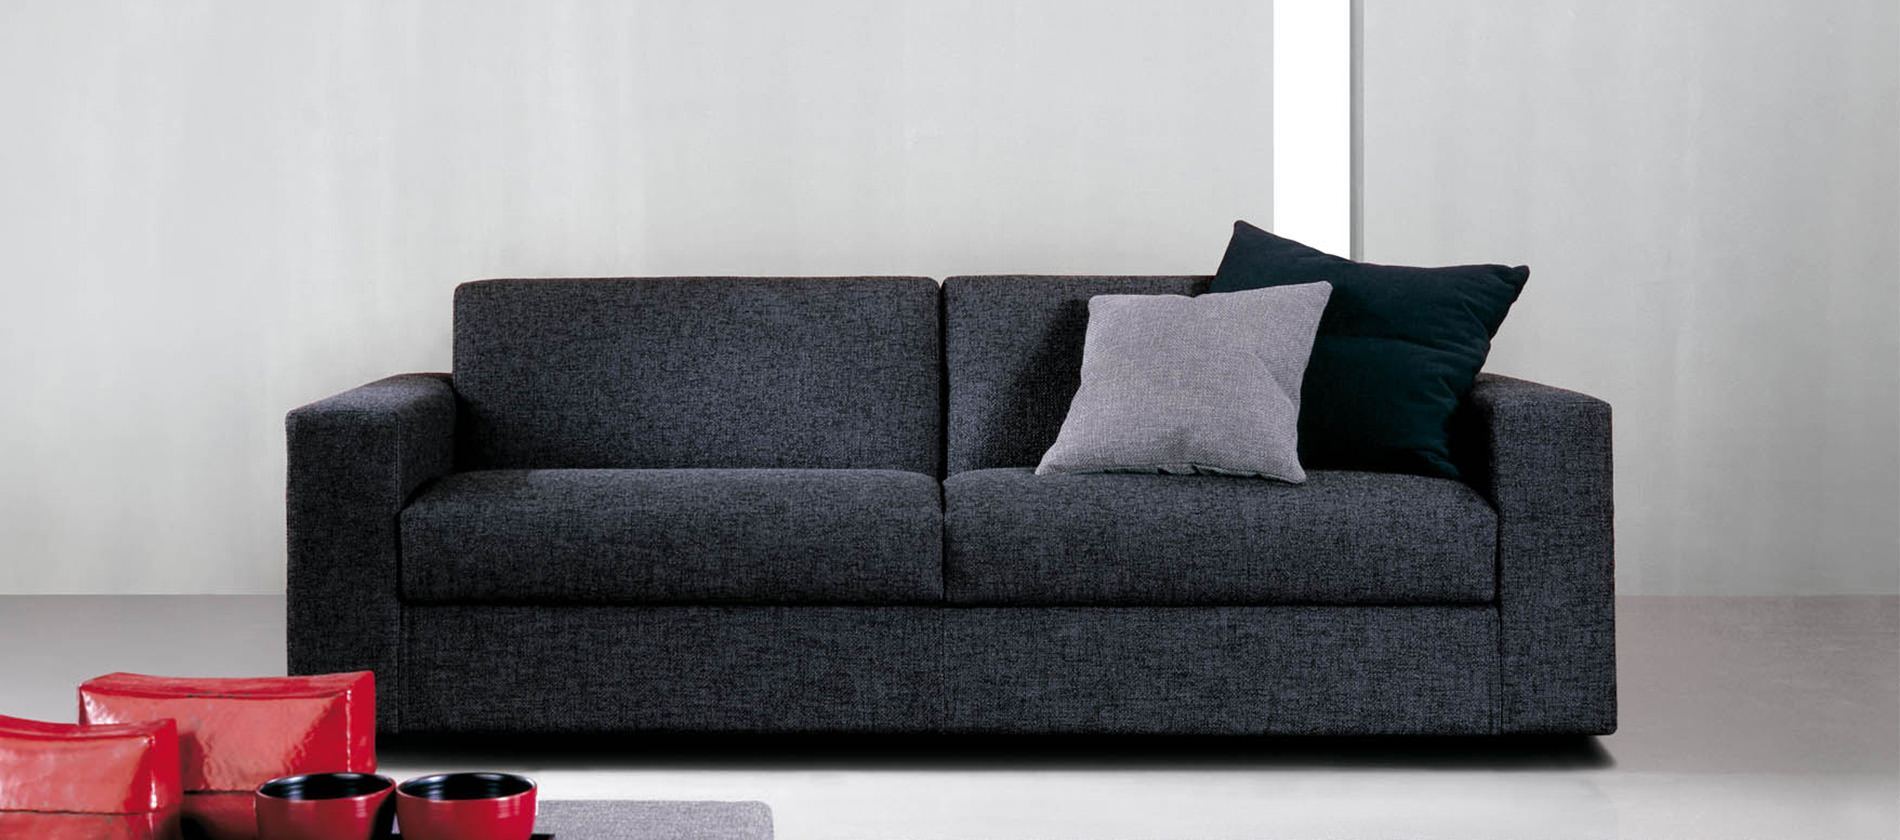 Pol 74 Lario Bettsofa